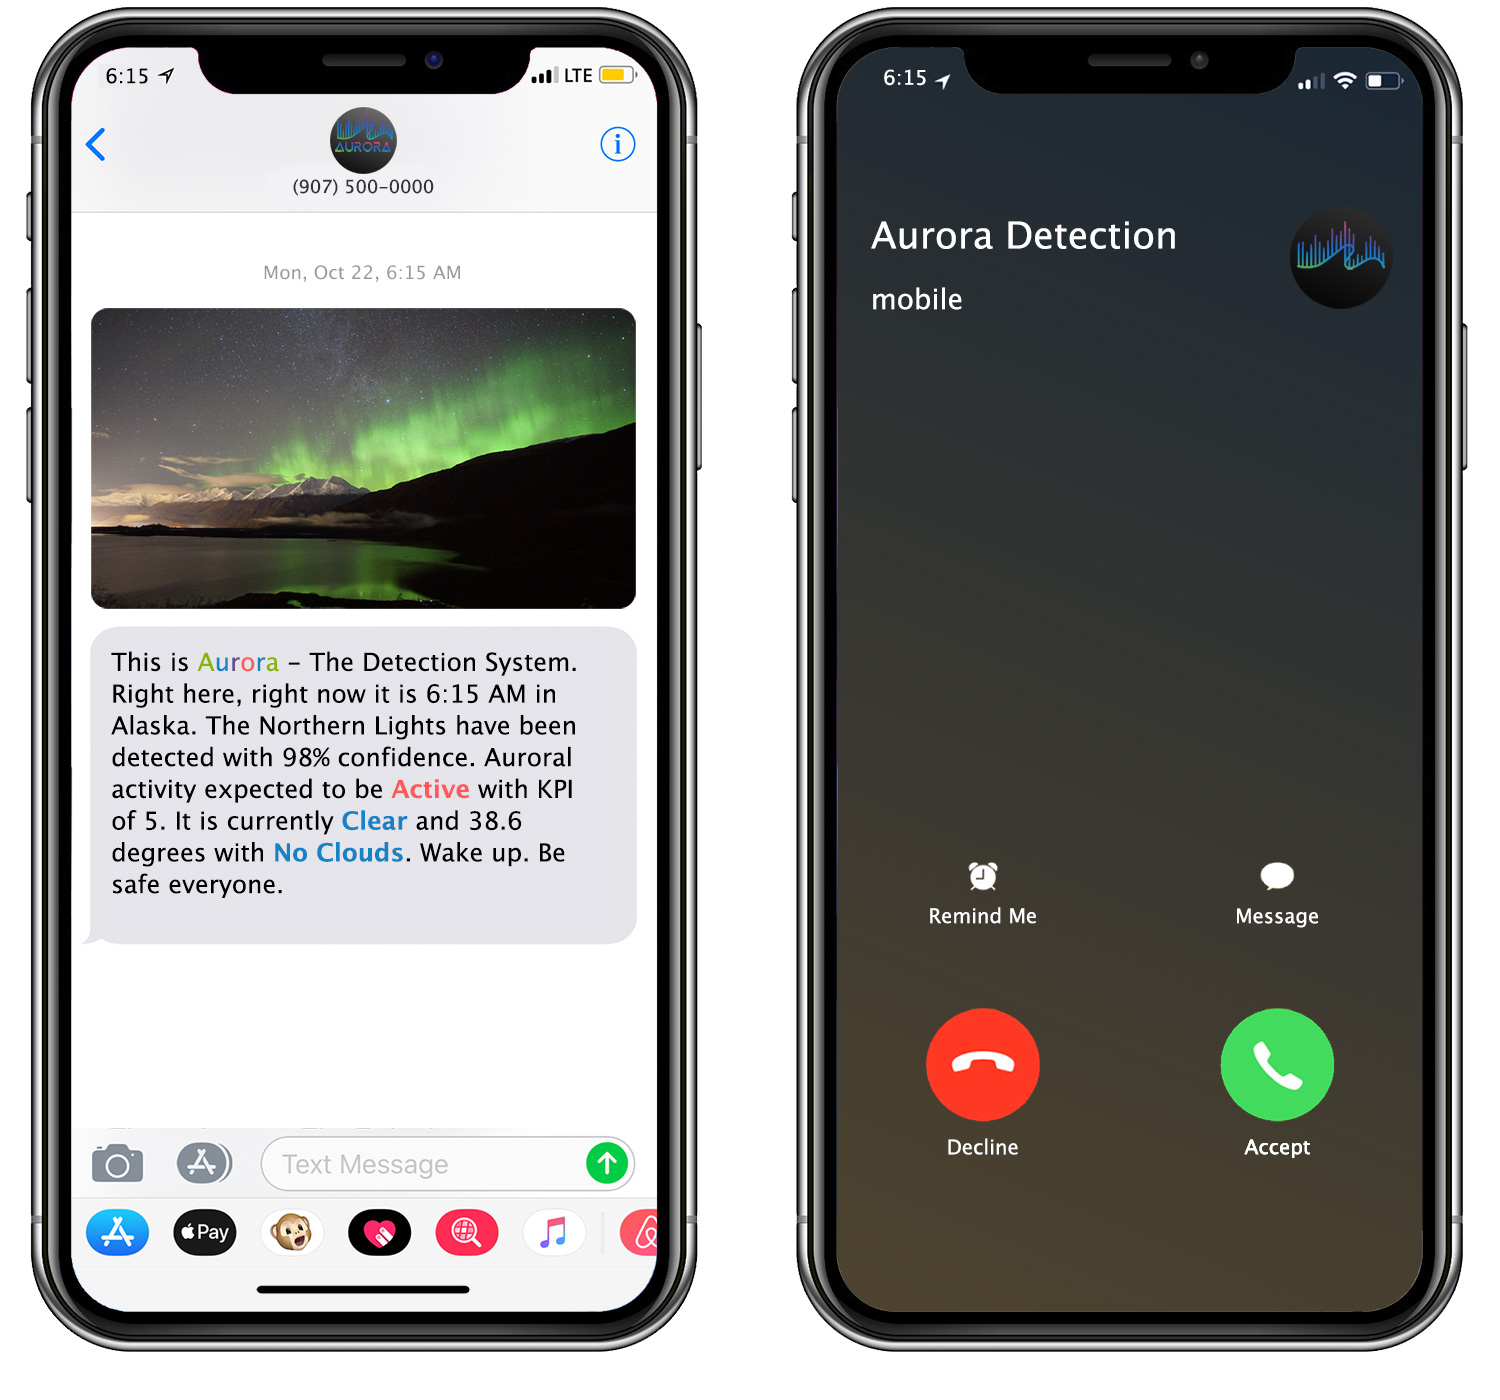 detects aurora borealis and sends alerts with phone call and text message